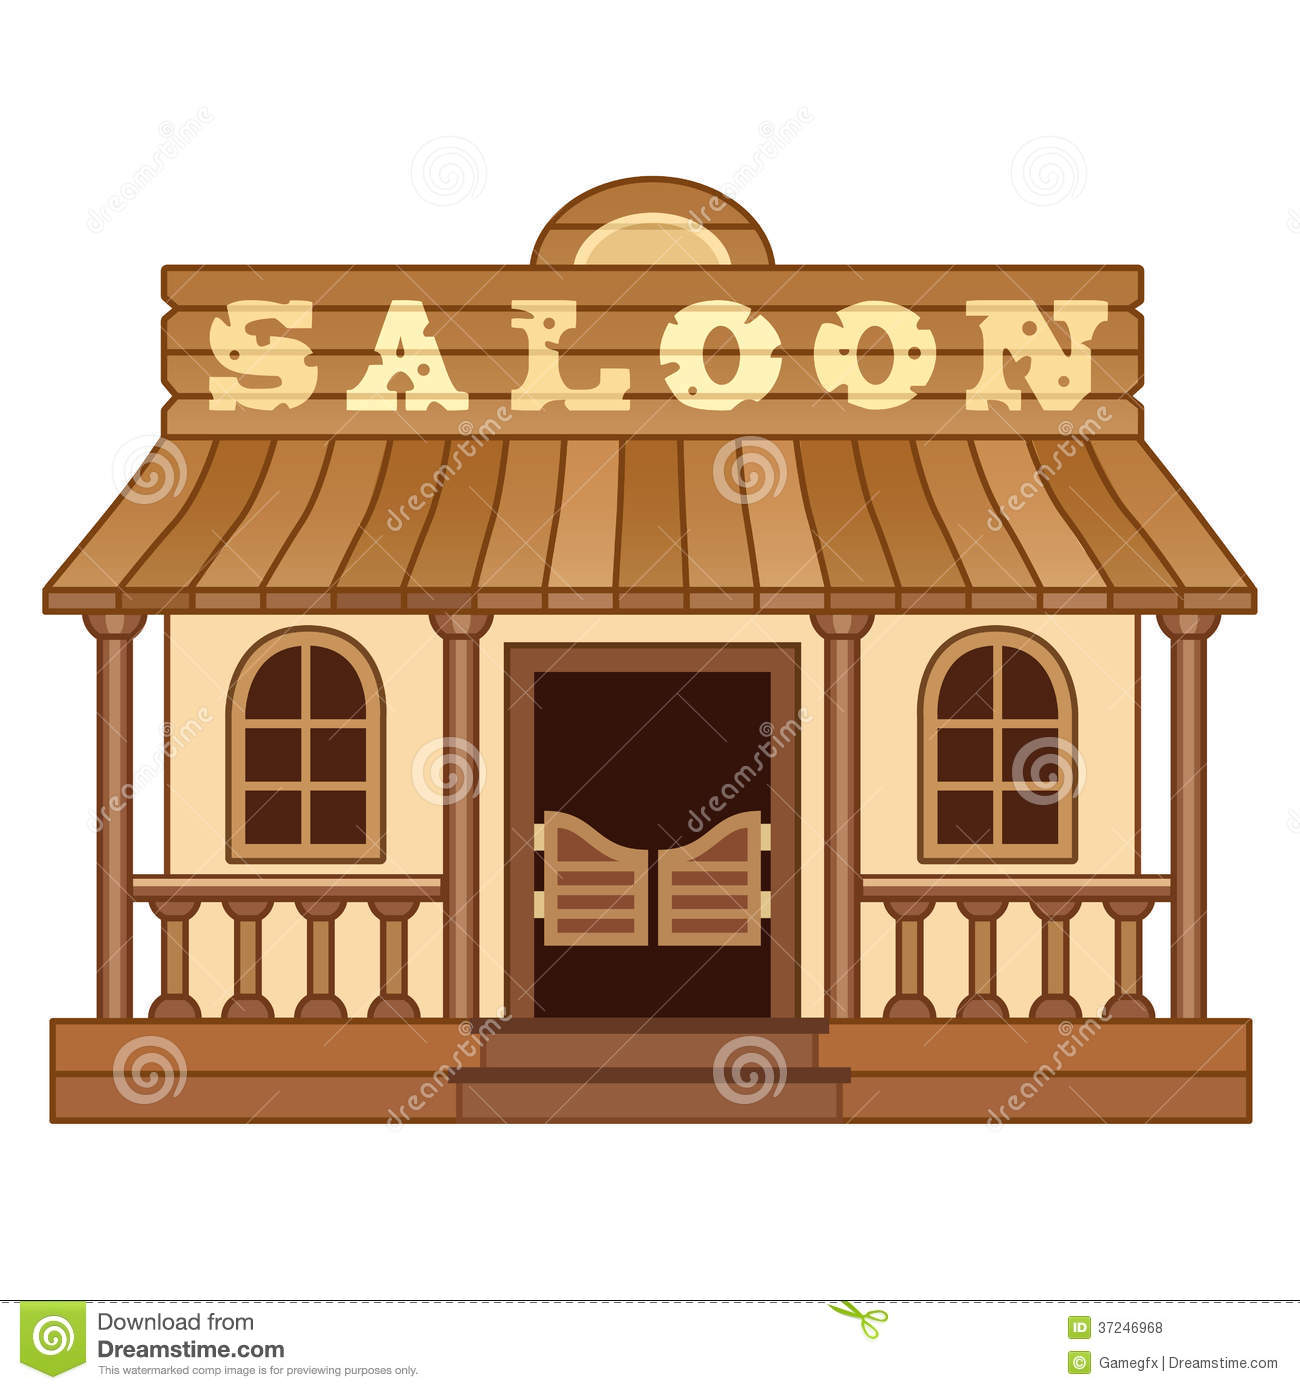 Old Western Saloon Clipart-Old Western Saloon Clipart-6